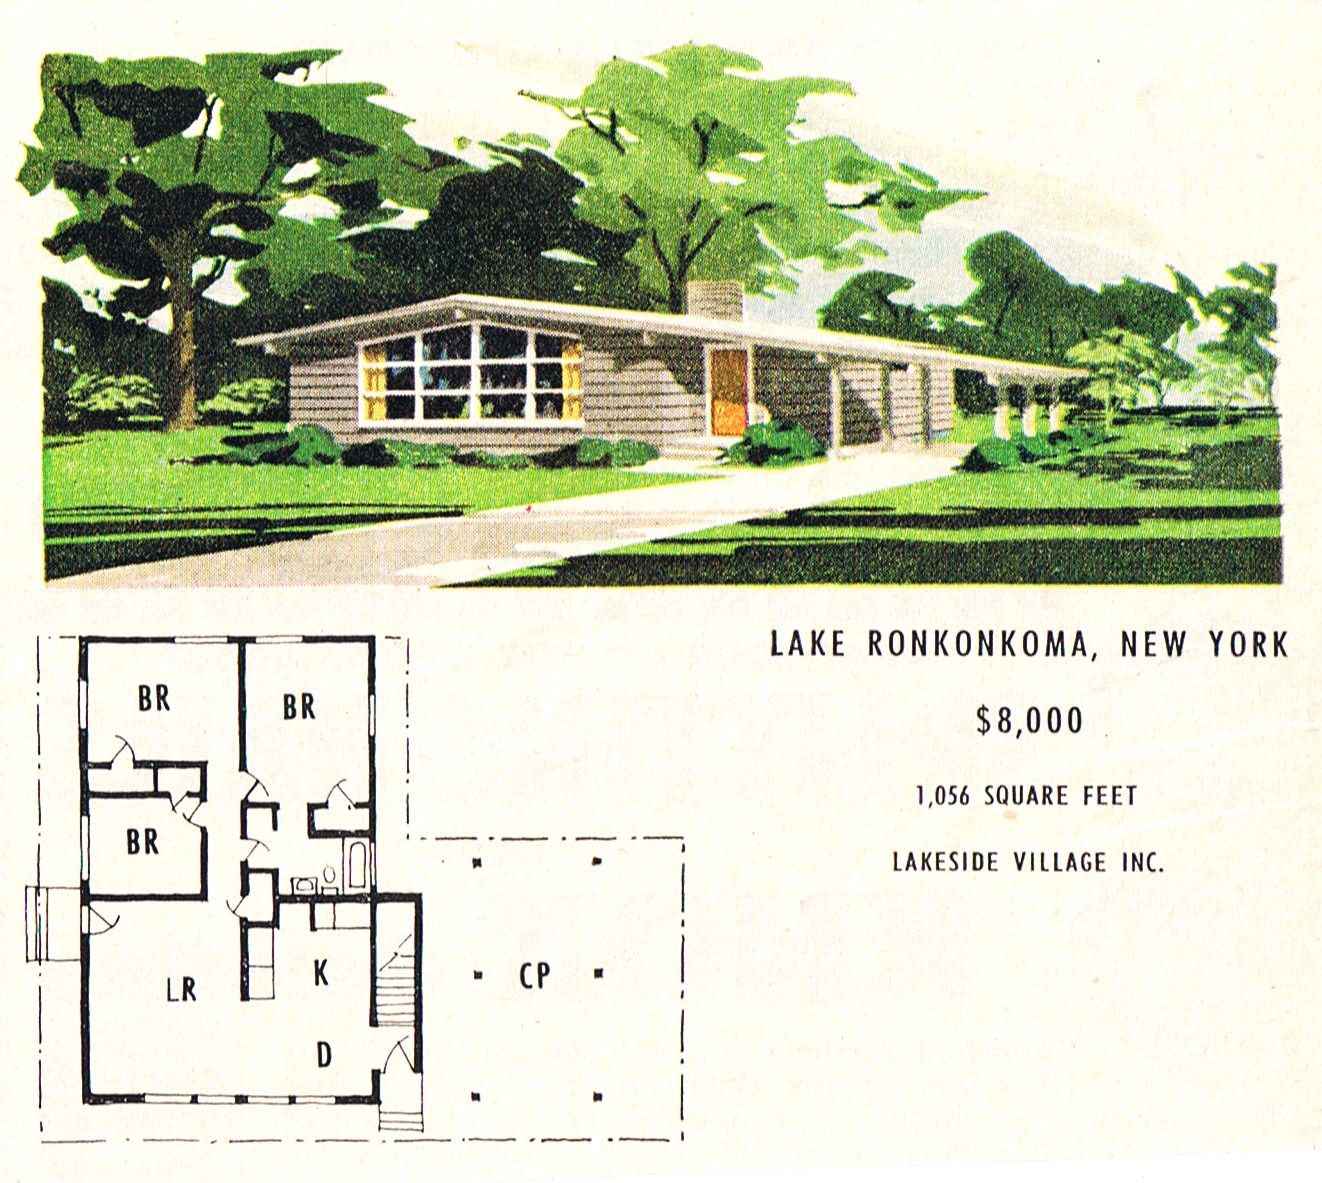 Lakeside village mcm ranch mid century modern dream house plans pinterest ranch and mid Mid century modern home plans